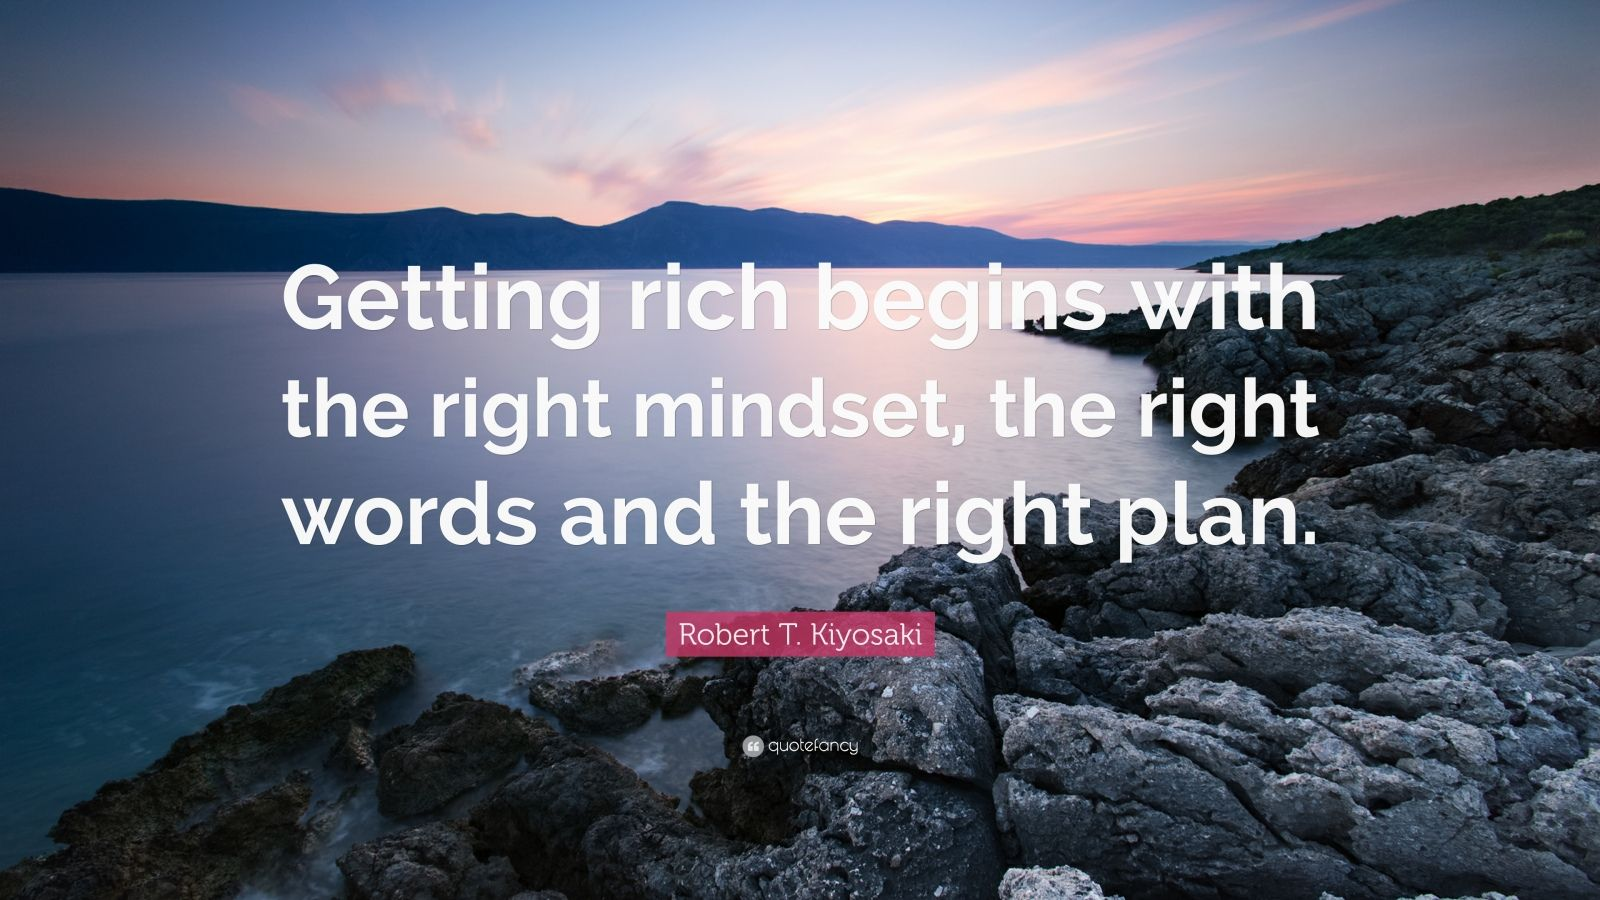 """Robert T. Kiyosaki Quote: """"Getting rich begins with the right mindset, the right words and the right plan."""""""